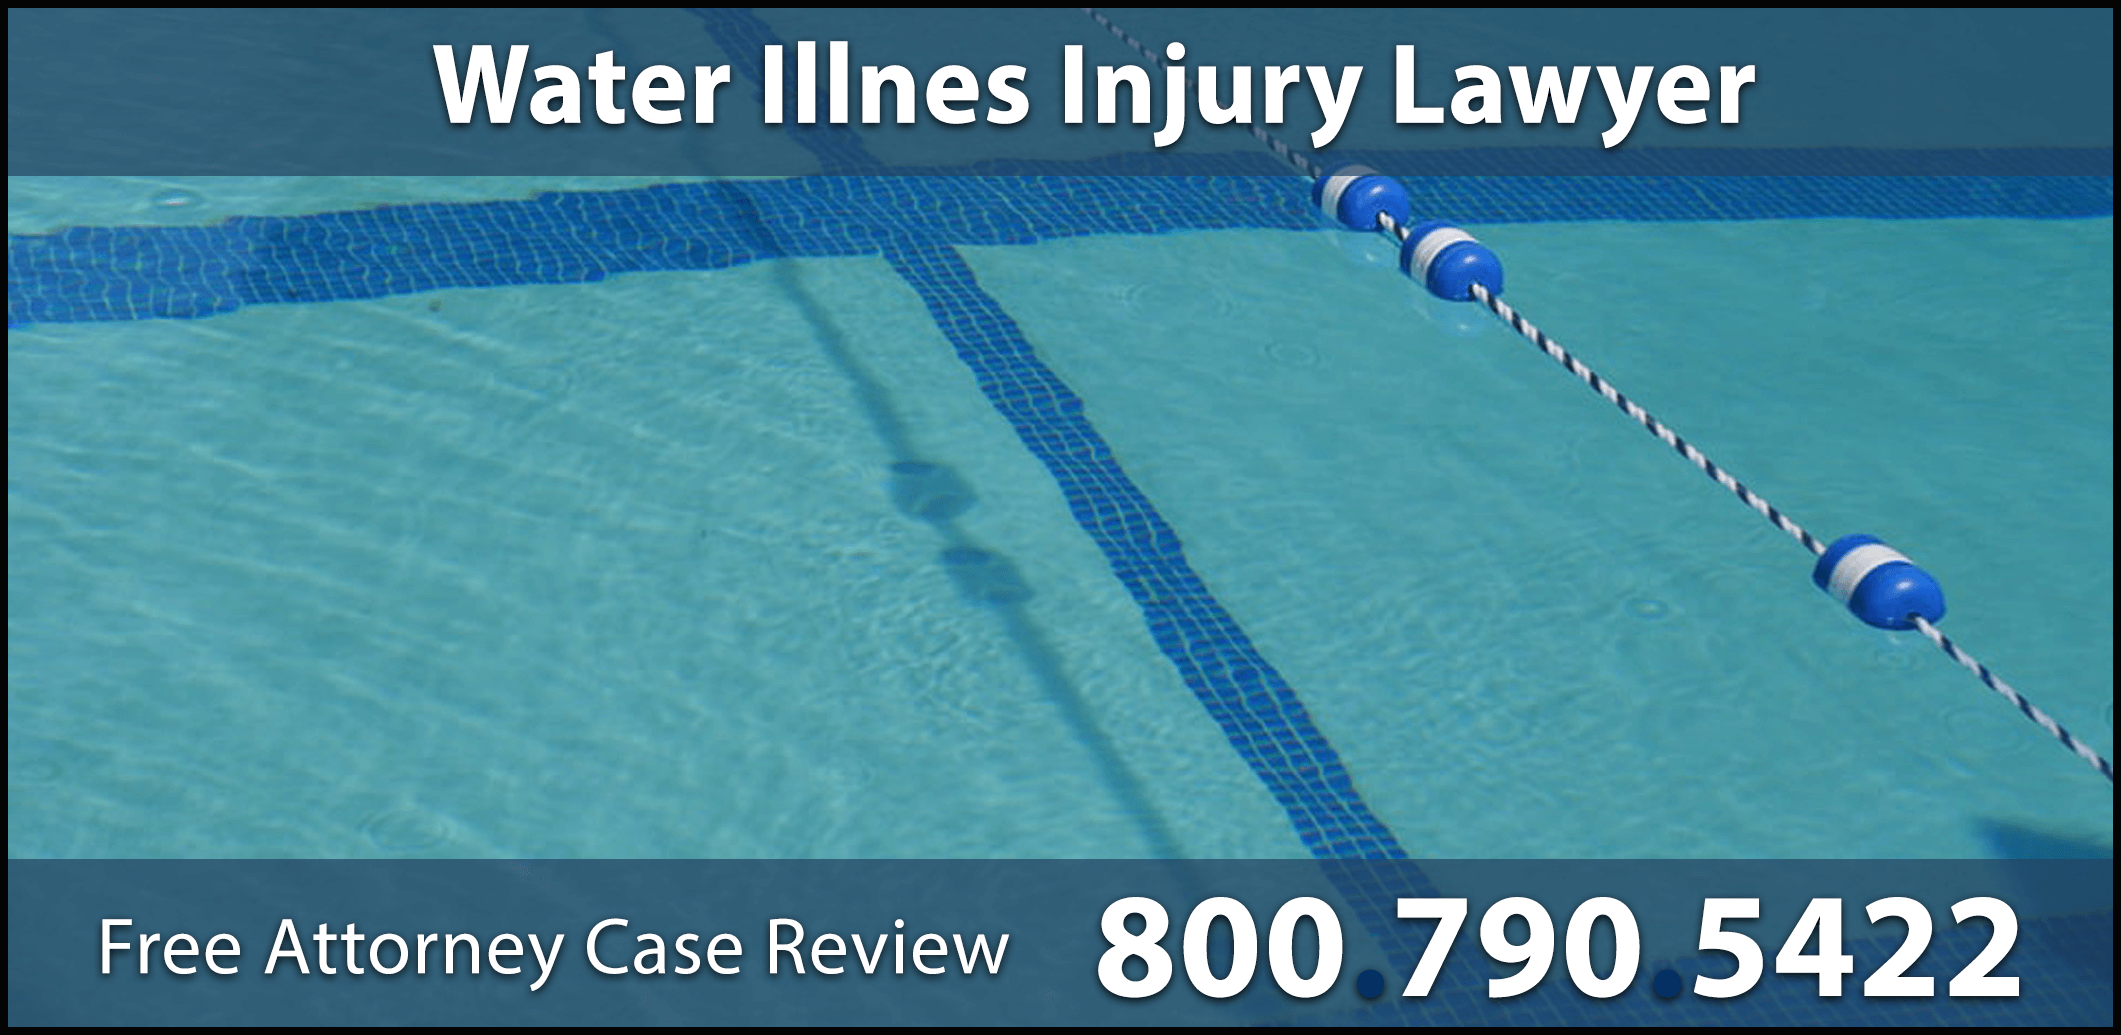 water illness accident lawyer sick trauma bacteria dirty compensation sue reimbursement medical expenses